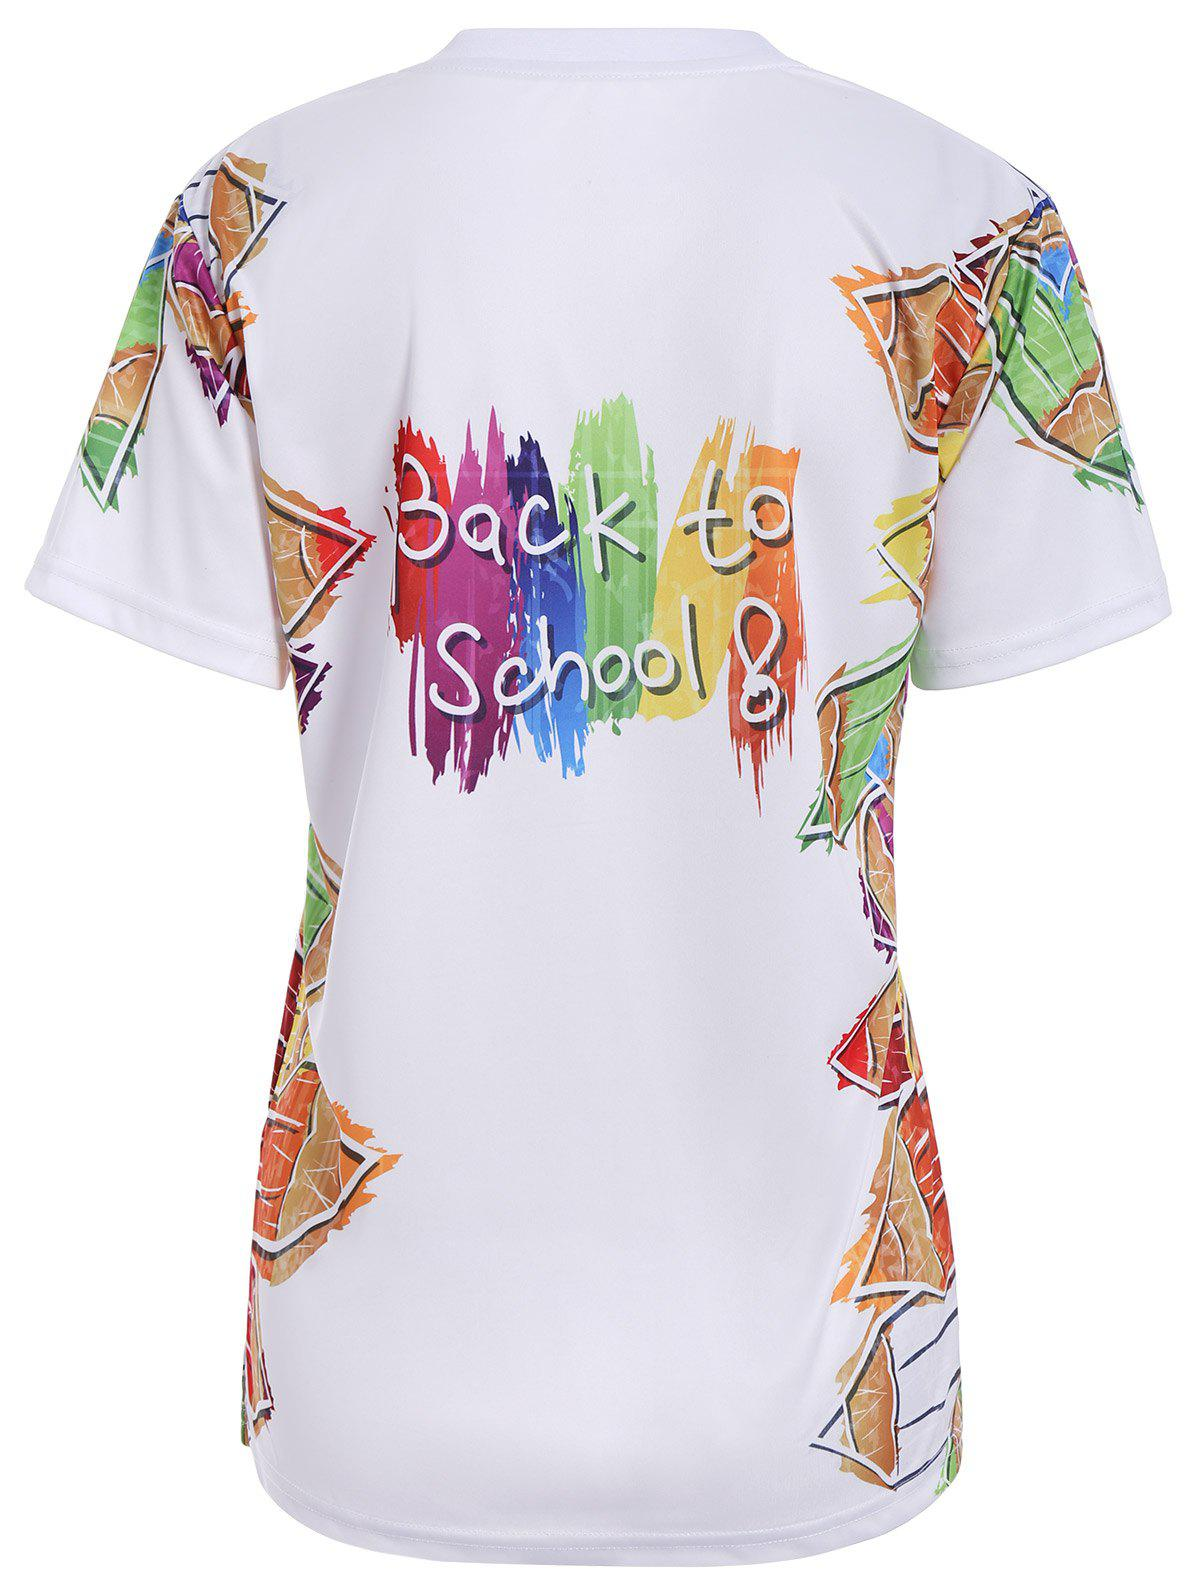 2018 back to shool graphic print t shirt white l in tees for Shirts with graphics on the back